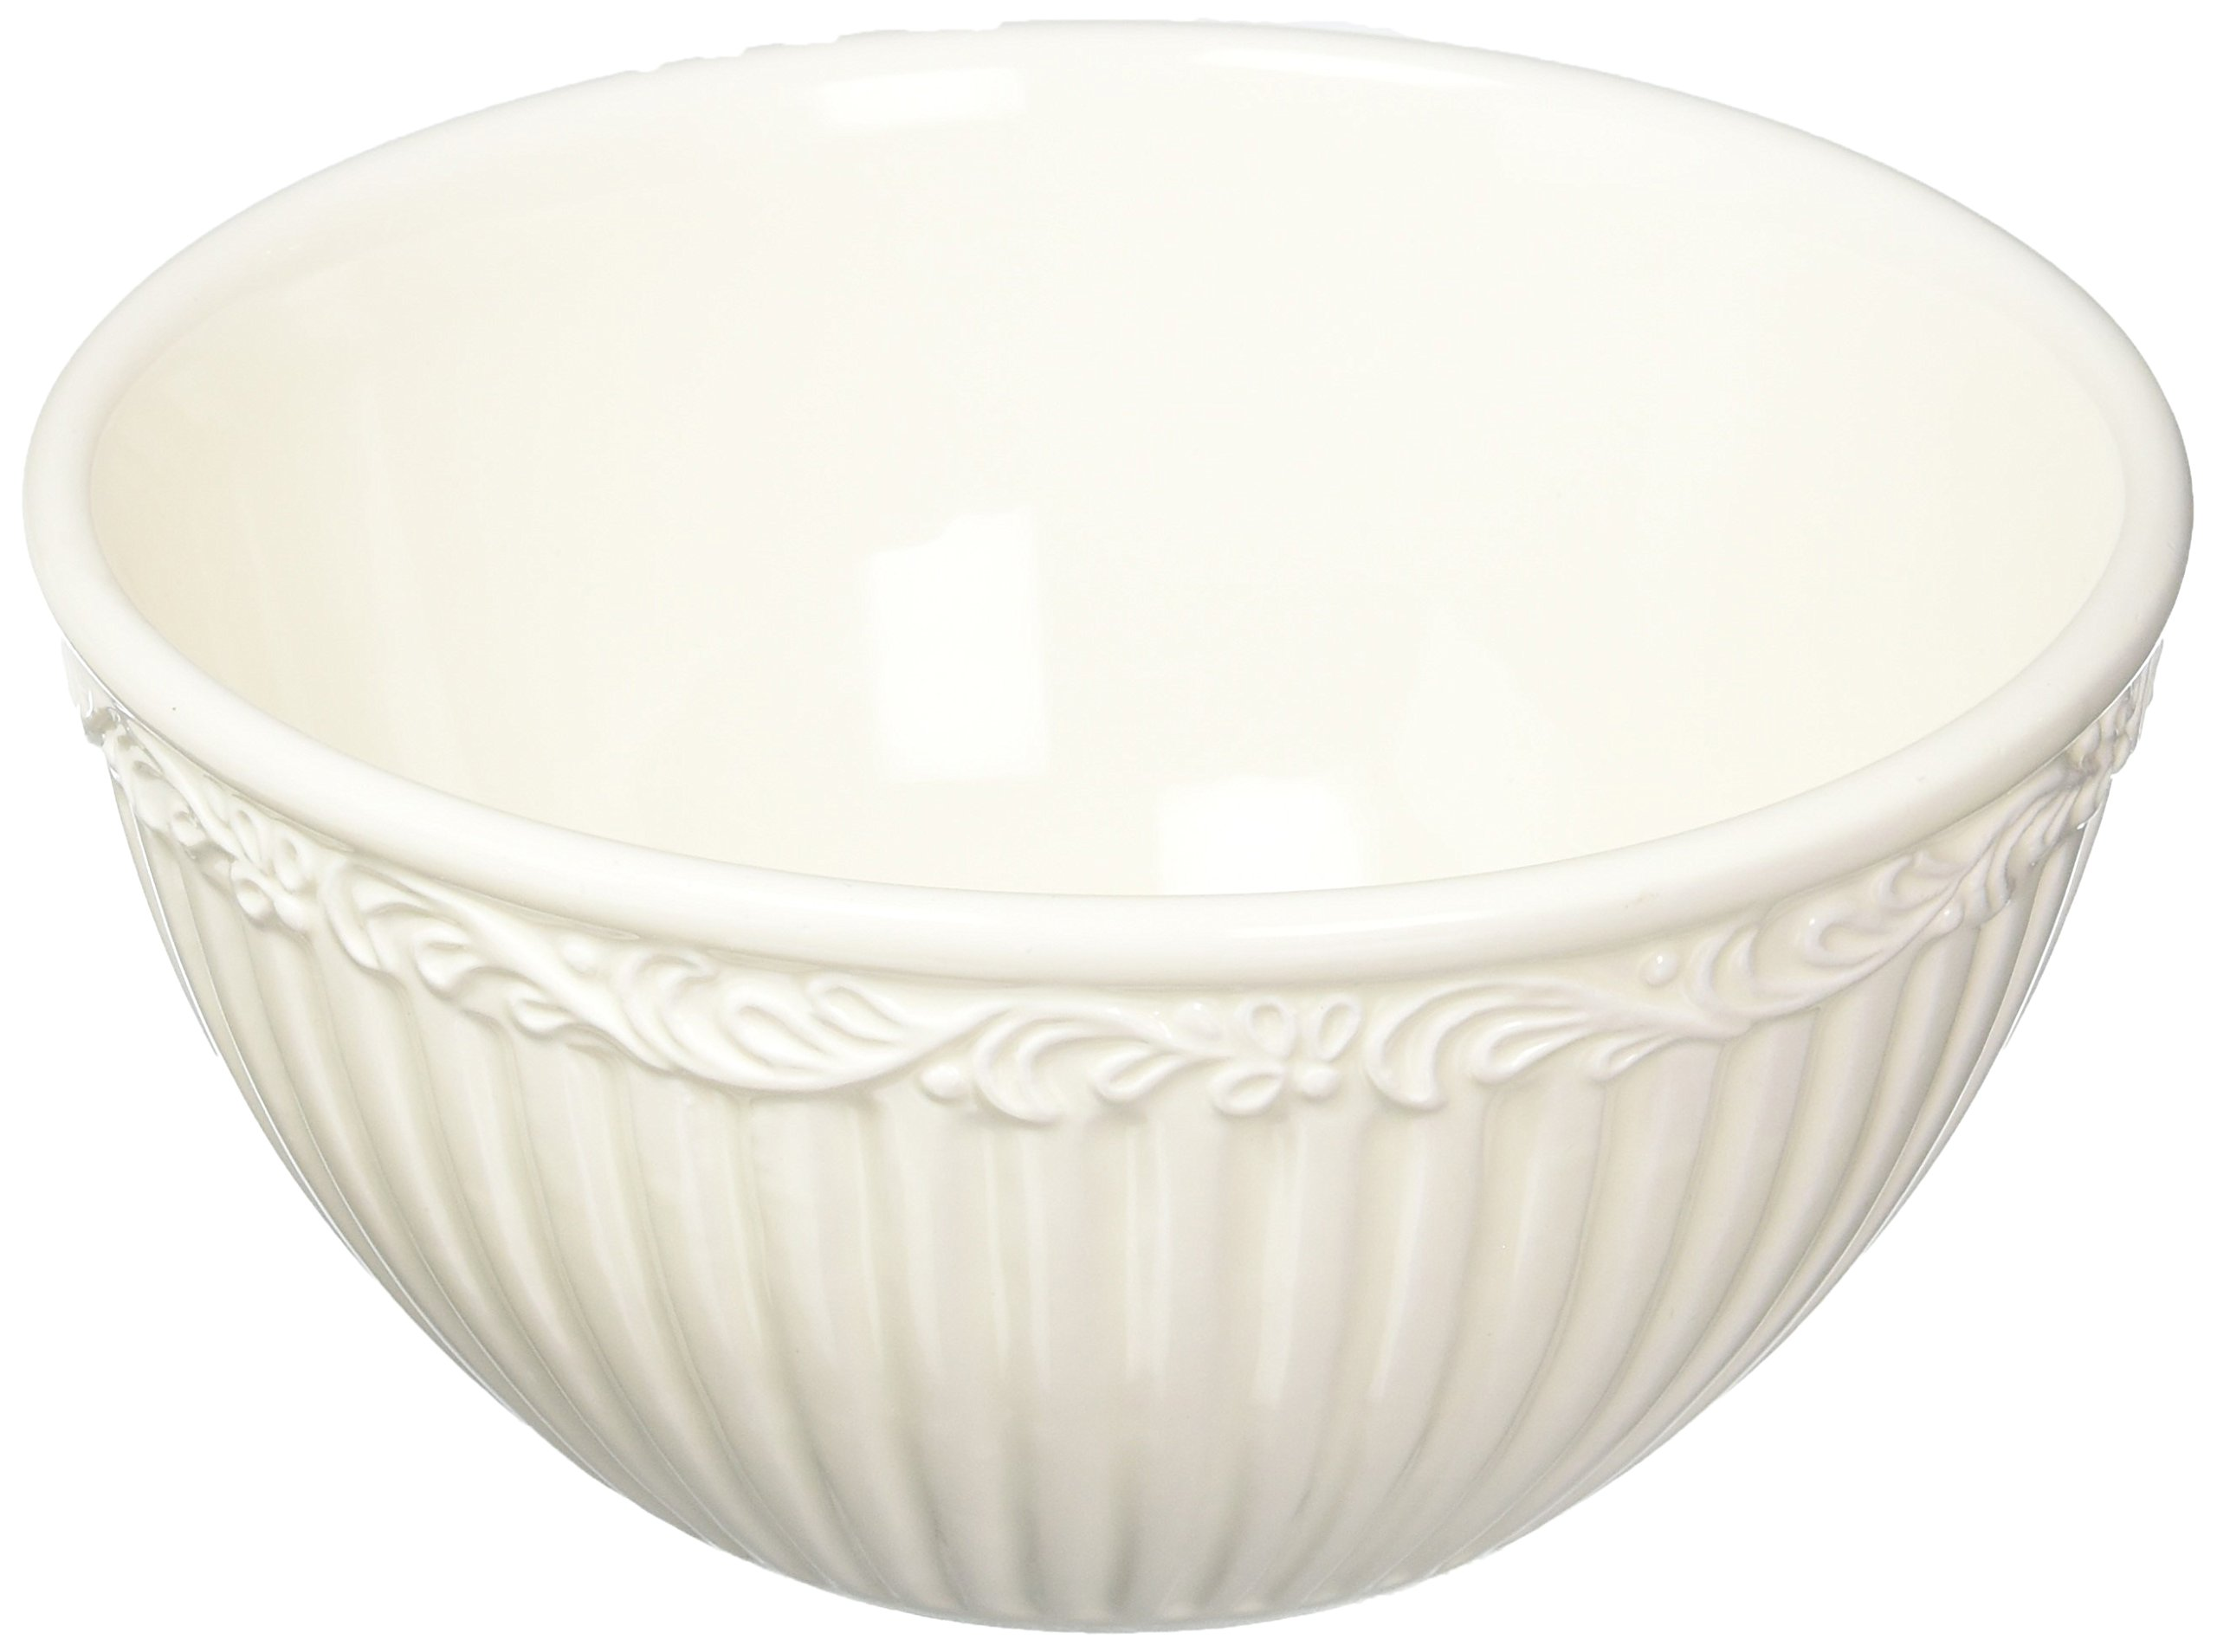 Mikasa Italian Countryside Soup/Cereal Bowls, Set of 4